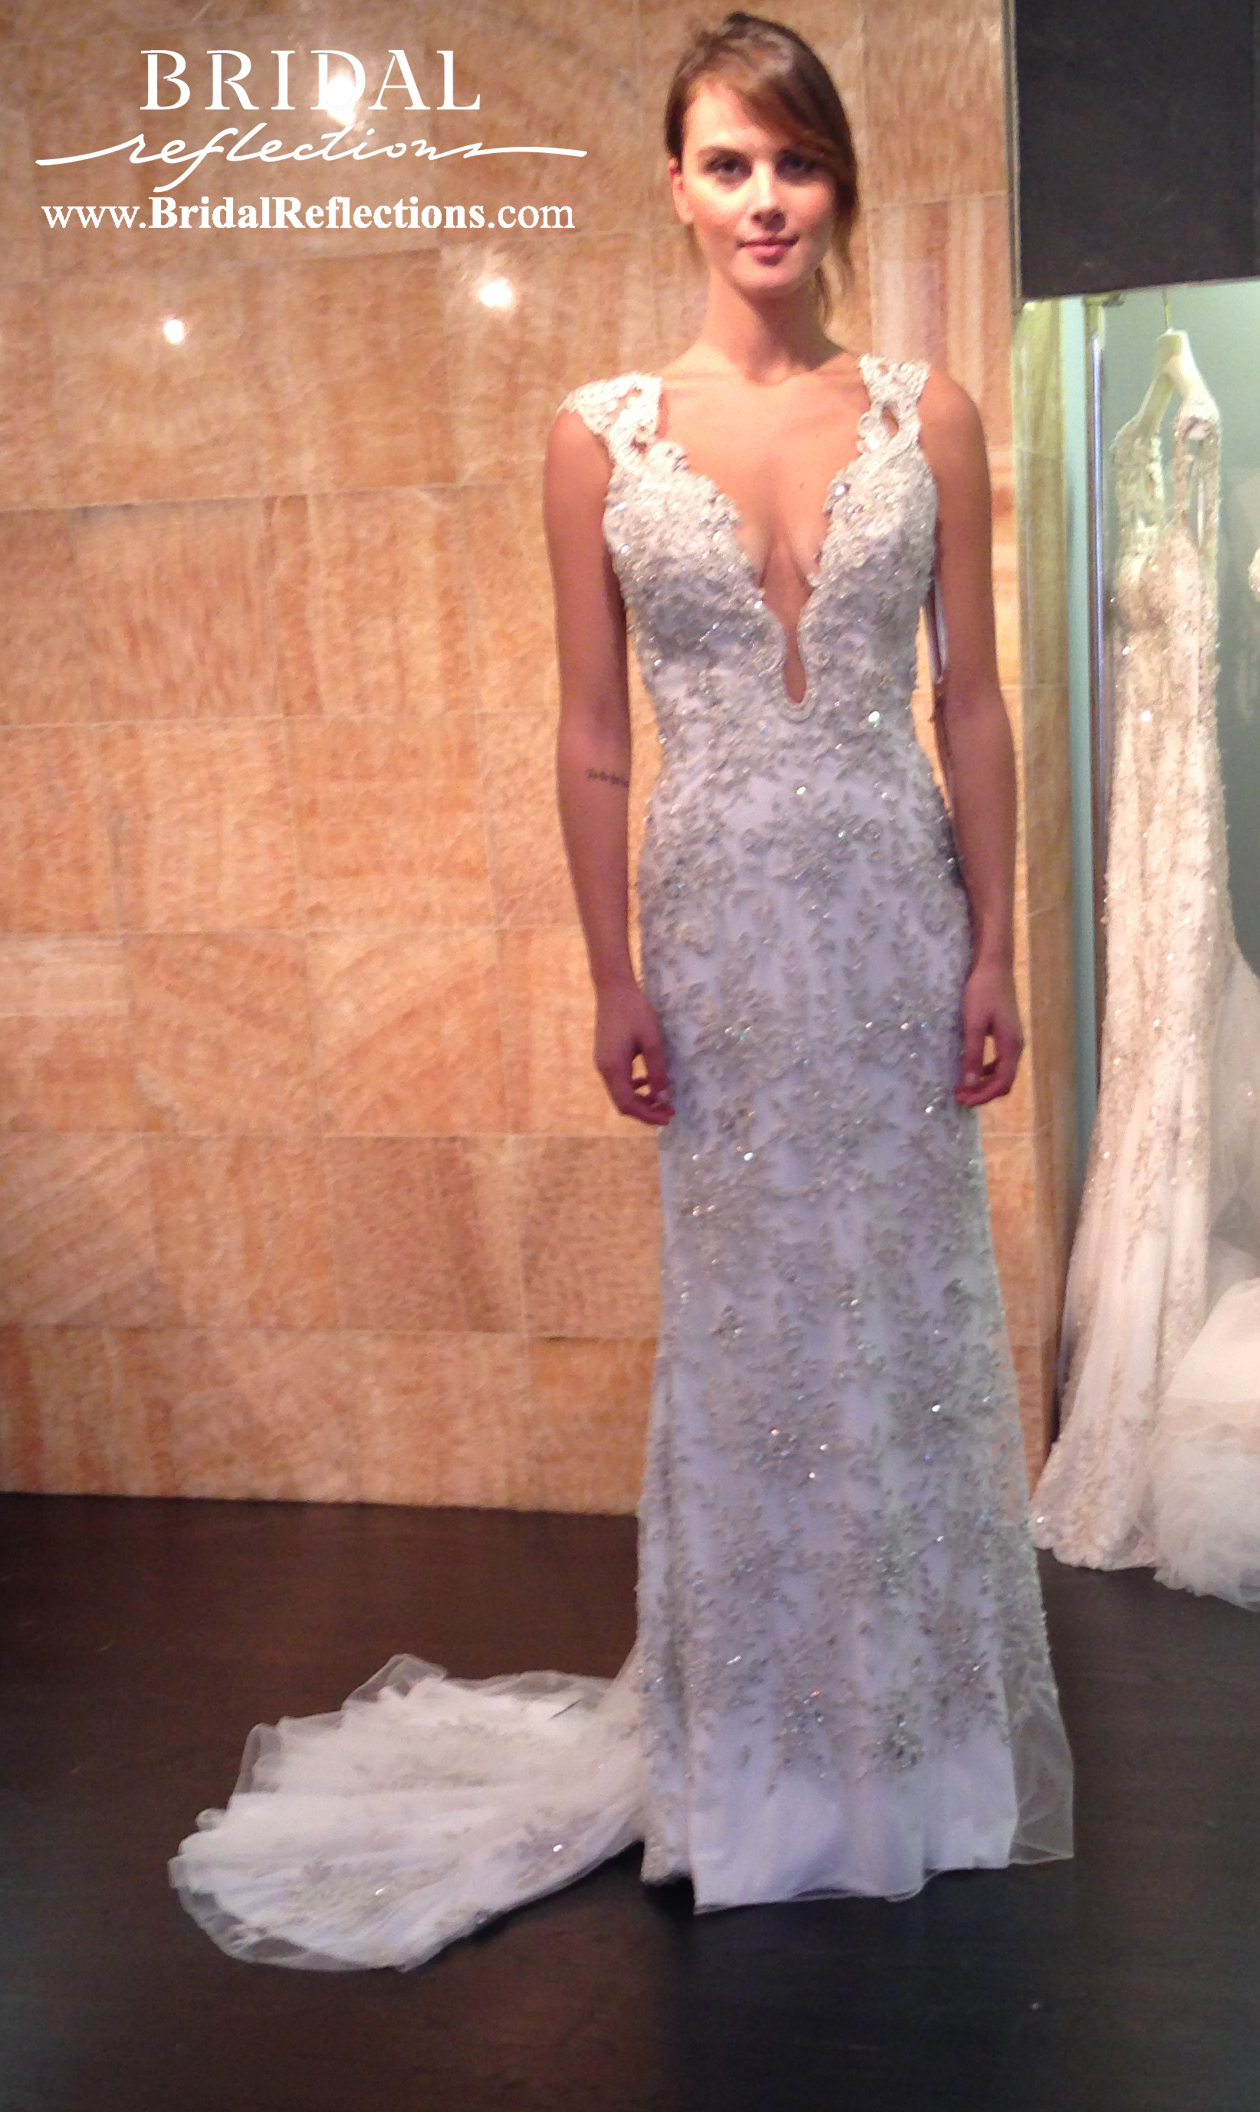 New Stephen Yearick Dress Collection   Bridal Reflections